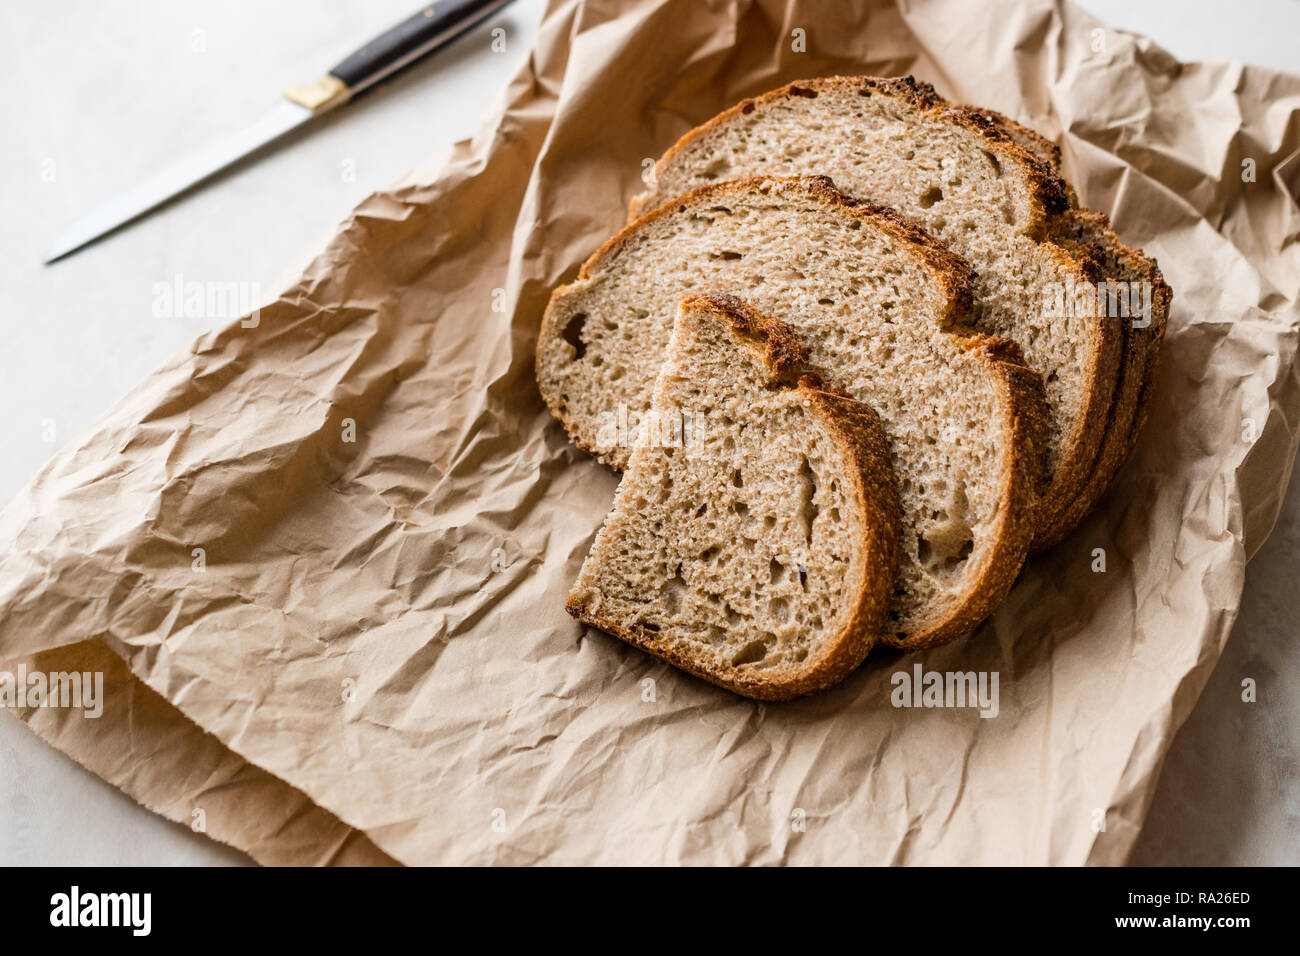 Artisan Sliced Homemade Sourdough Bread Slices with Paper Bag / Package or Craft Paper. Organic Bakery Food.